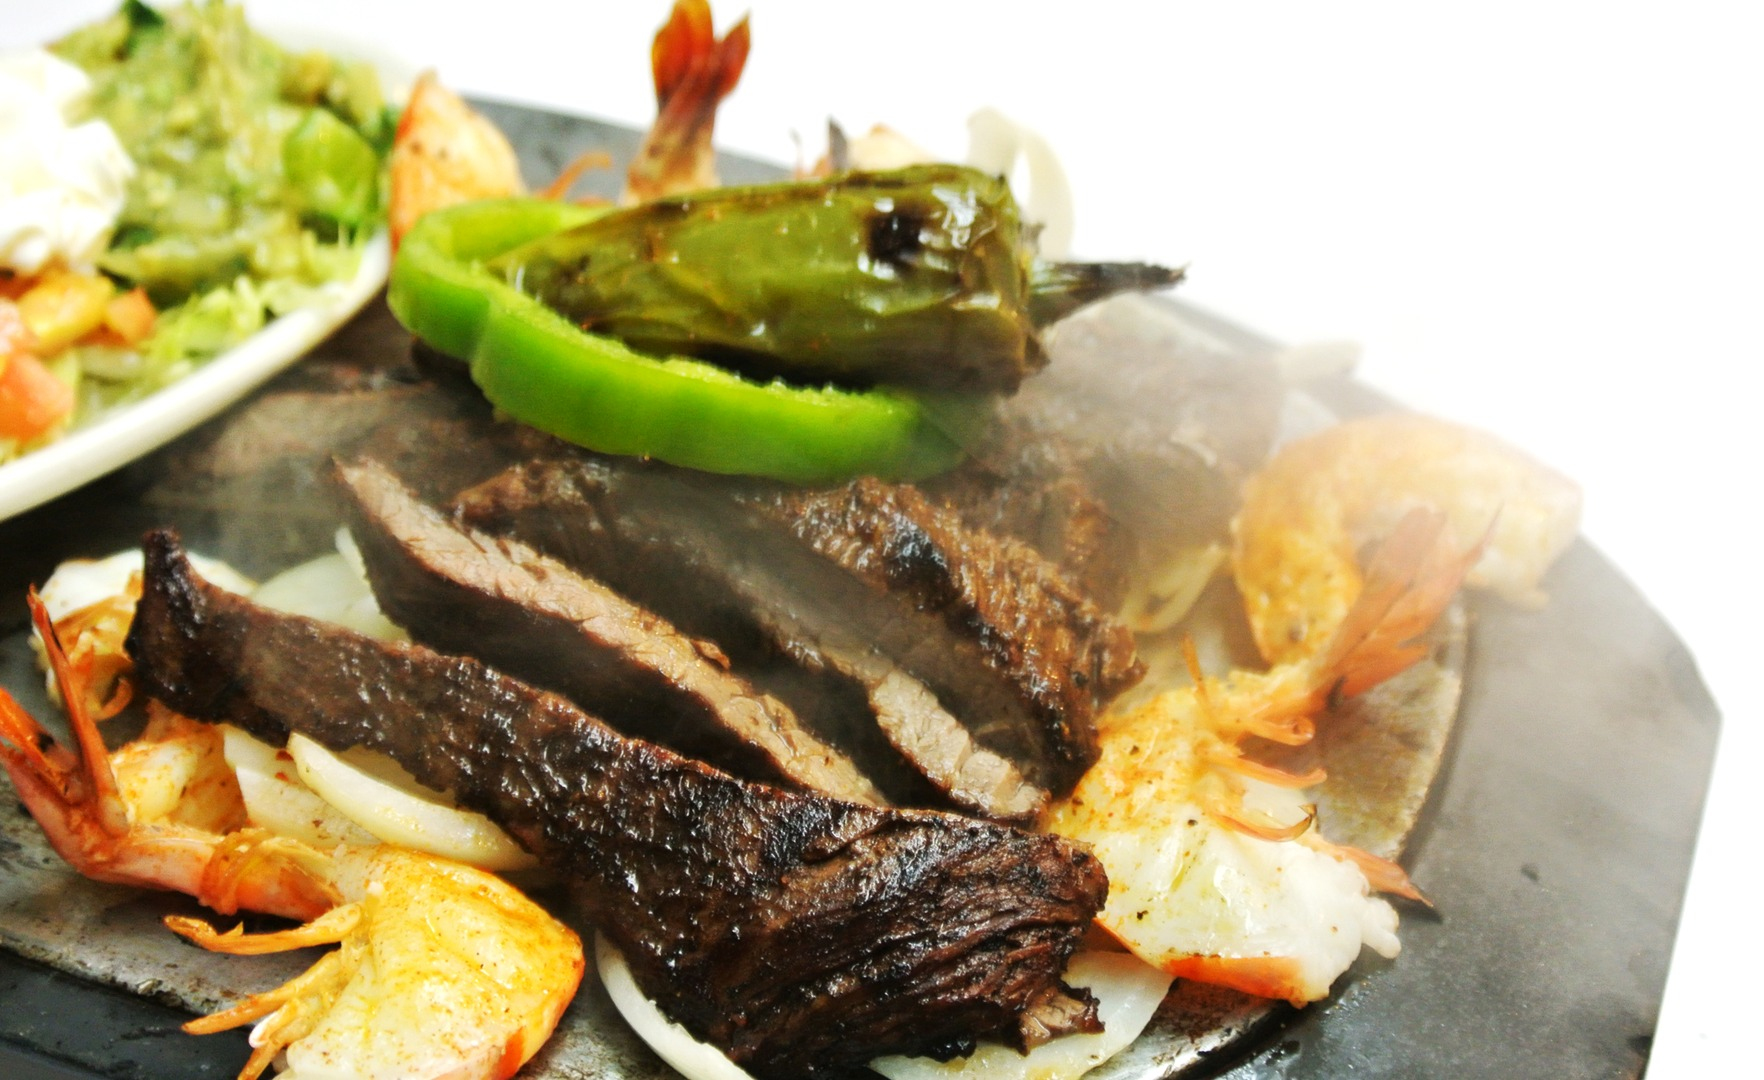 Sliced steak with sliced shrimp topped with green peppers